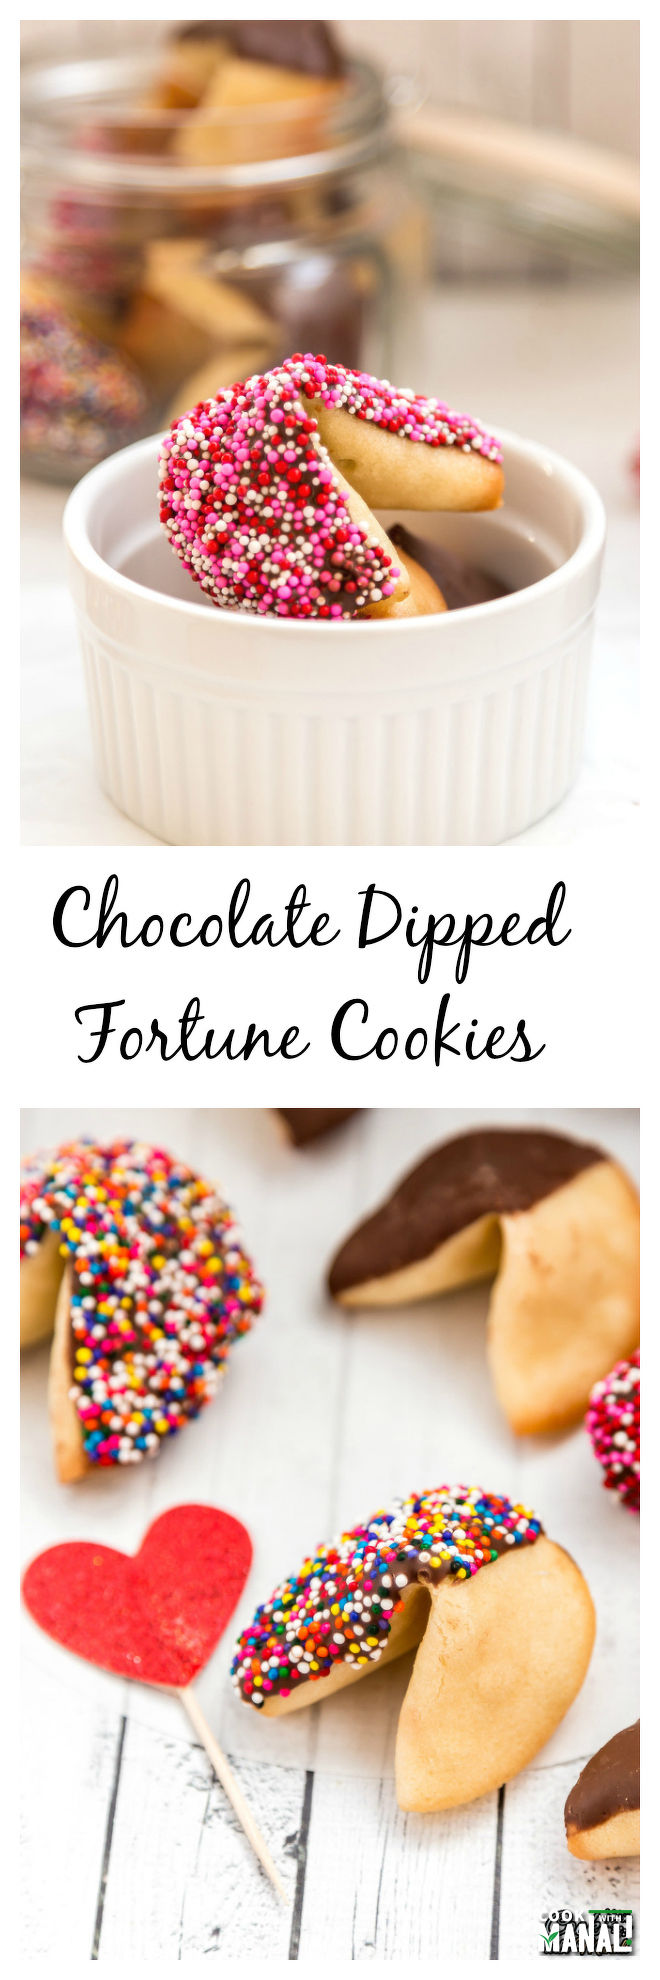 Chocolate-Dipped-Fortune-Cookies Collage